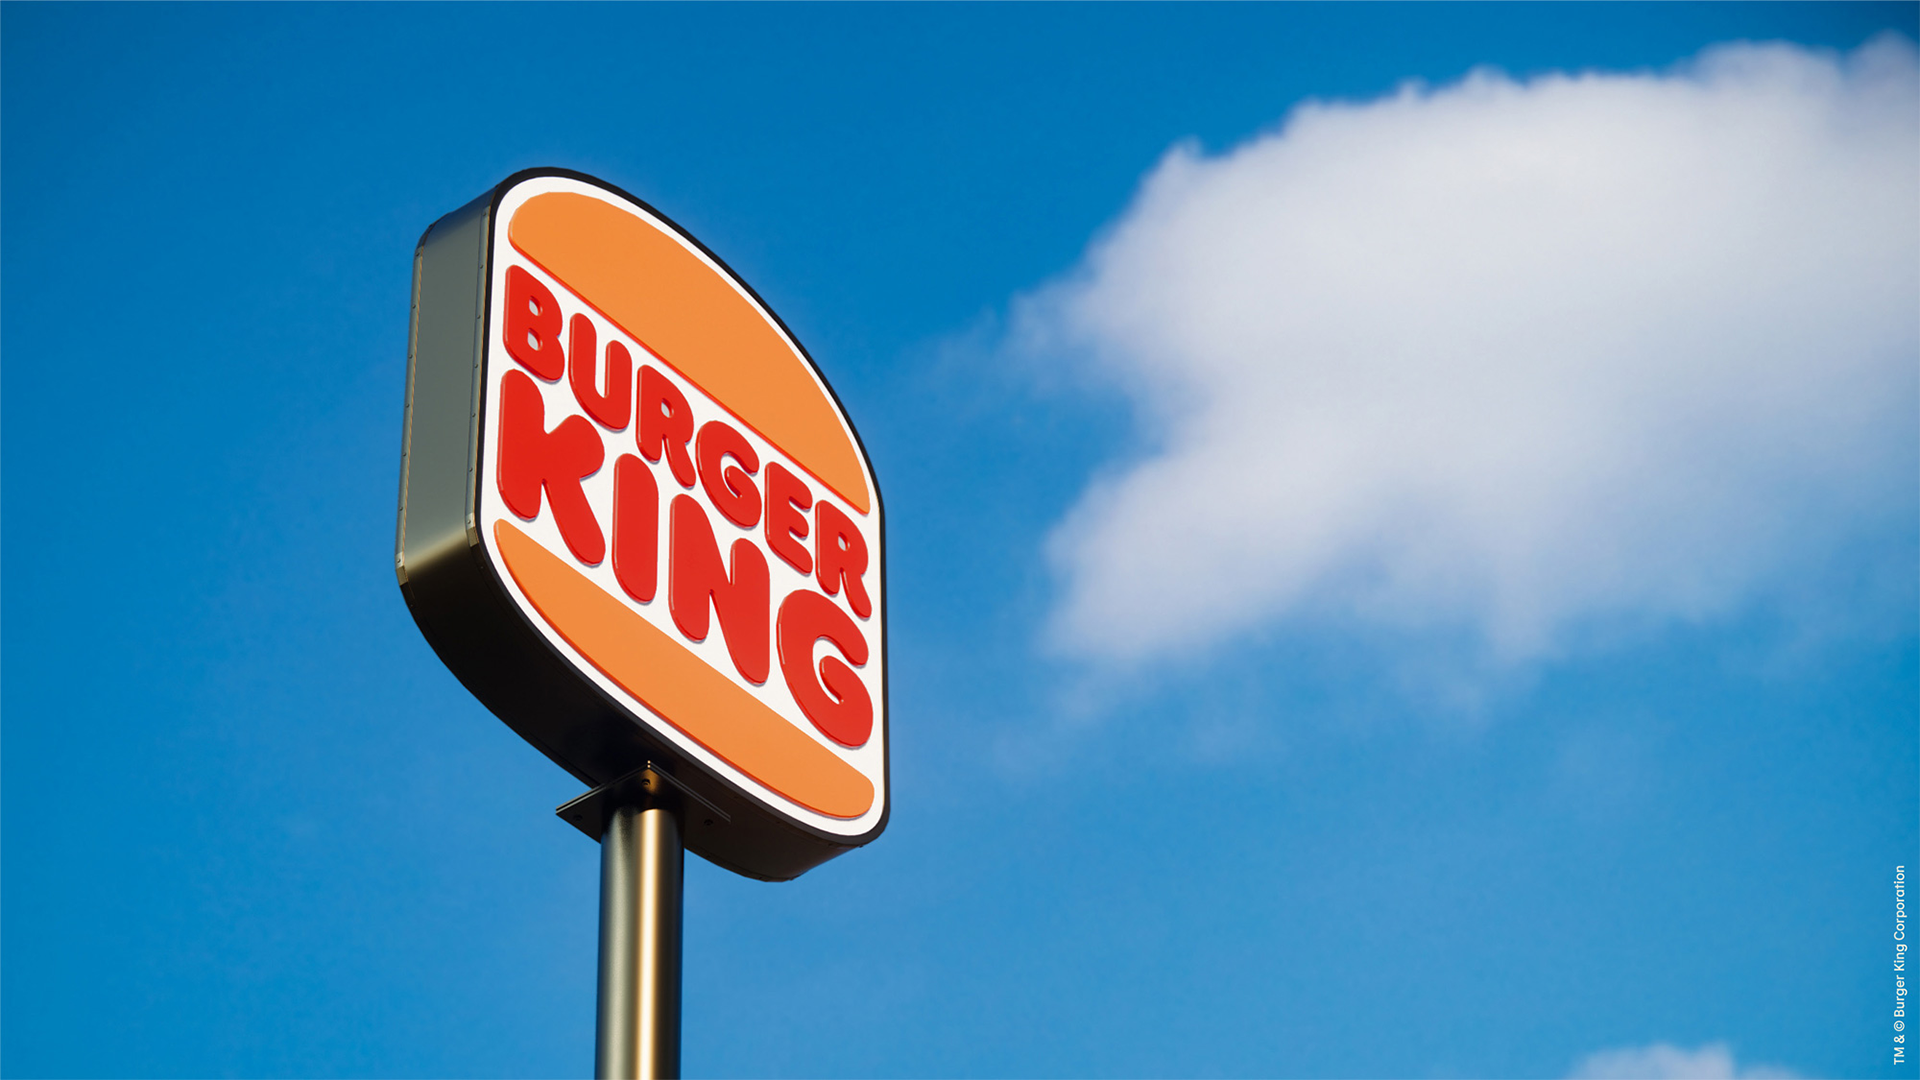 Large Burger King sign with blue sky behind it